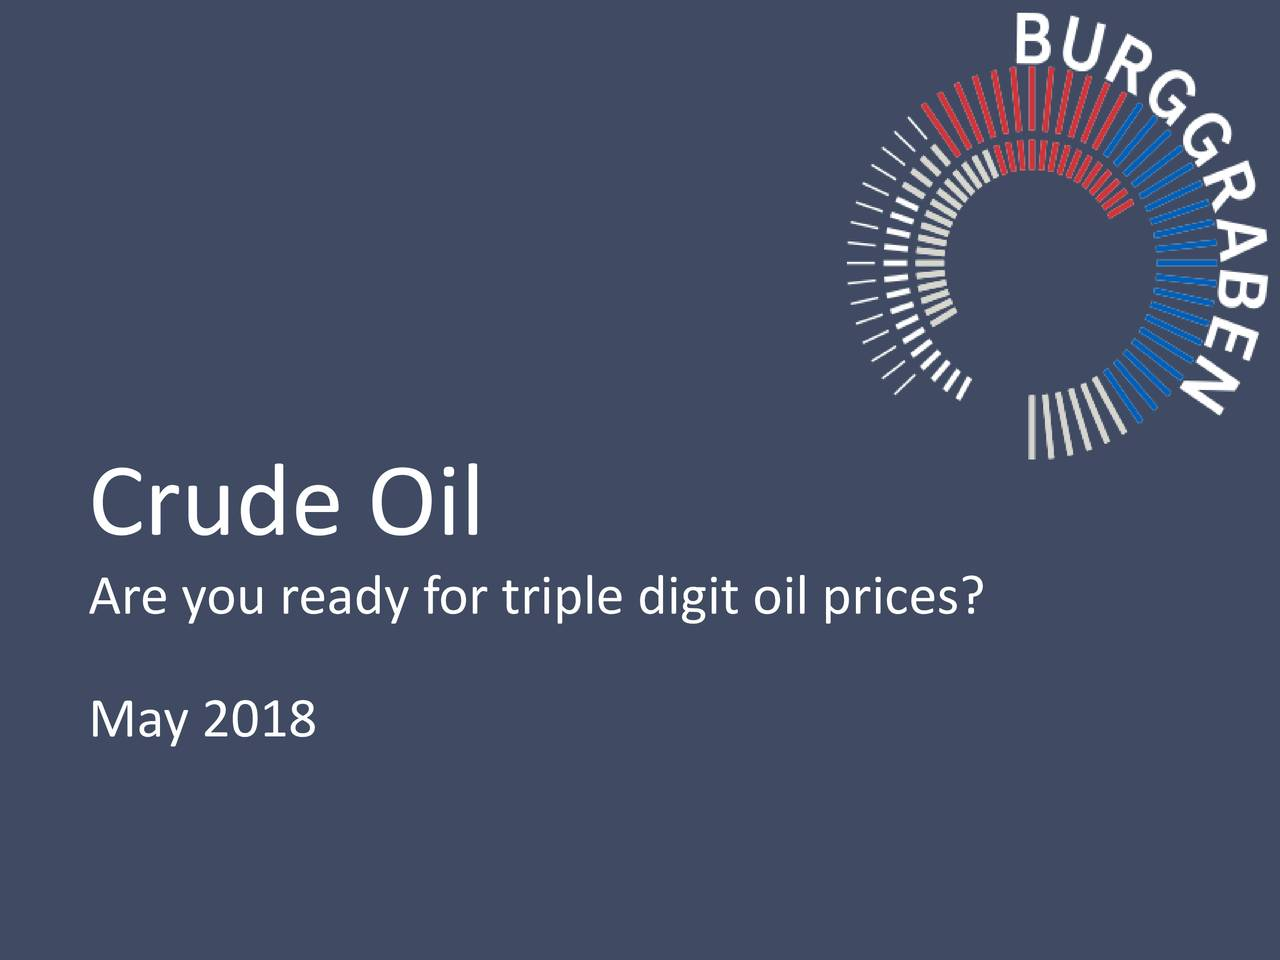 Are you ready for triple digit oil prices? May 2018